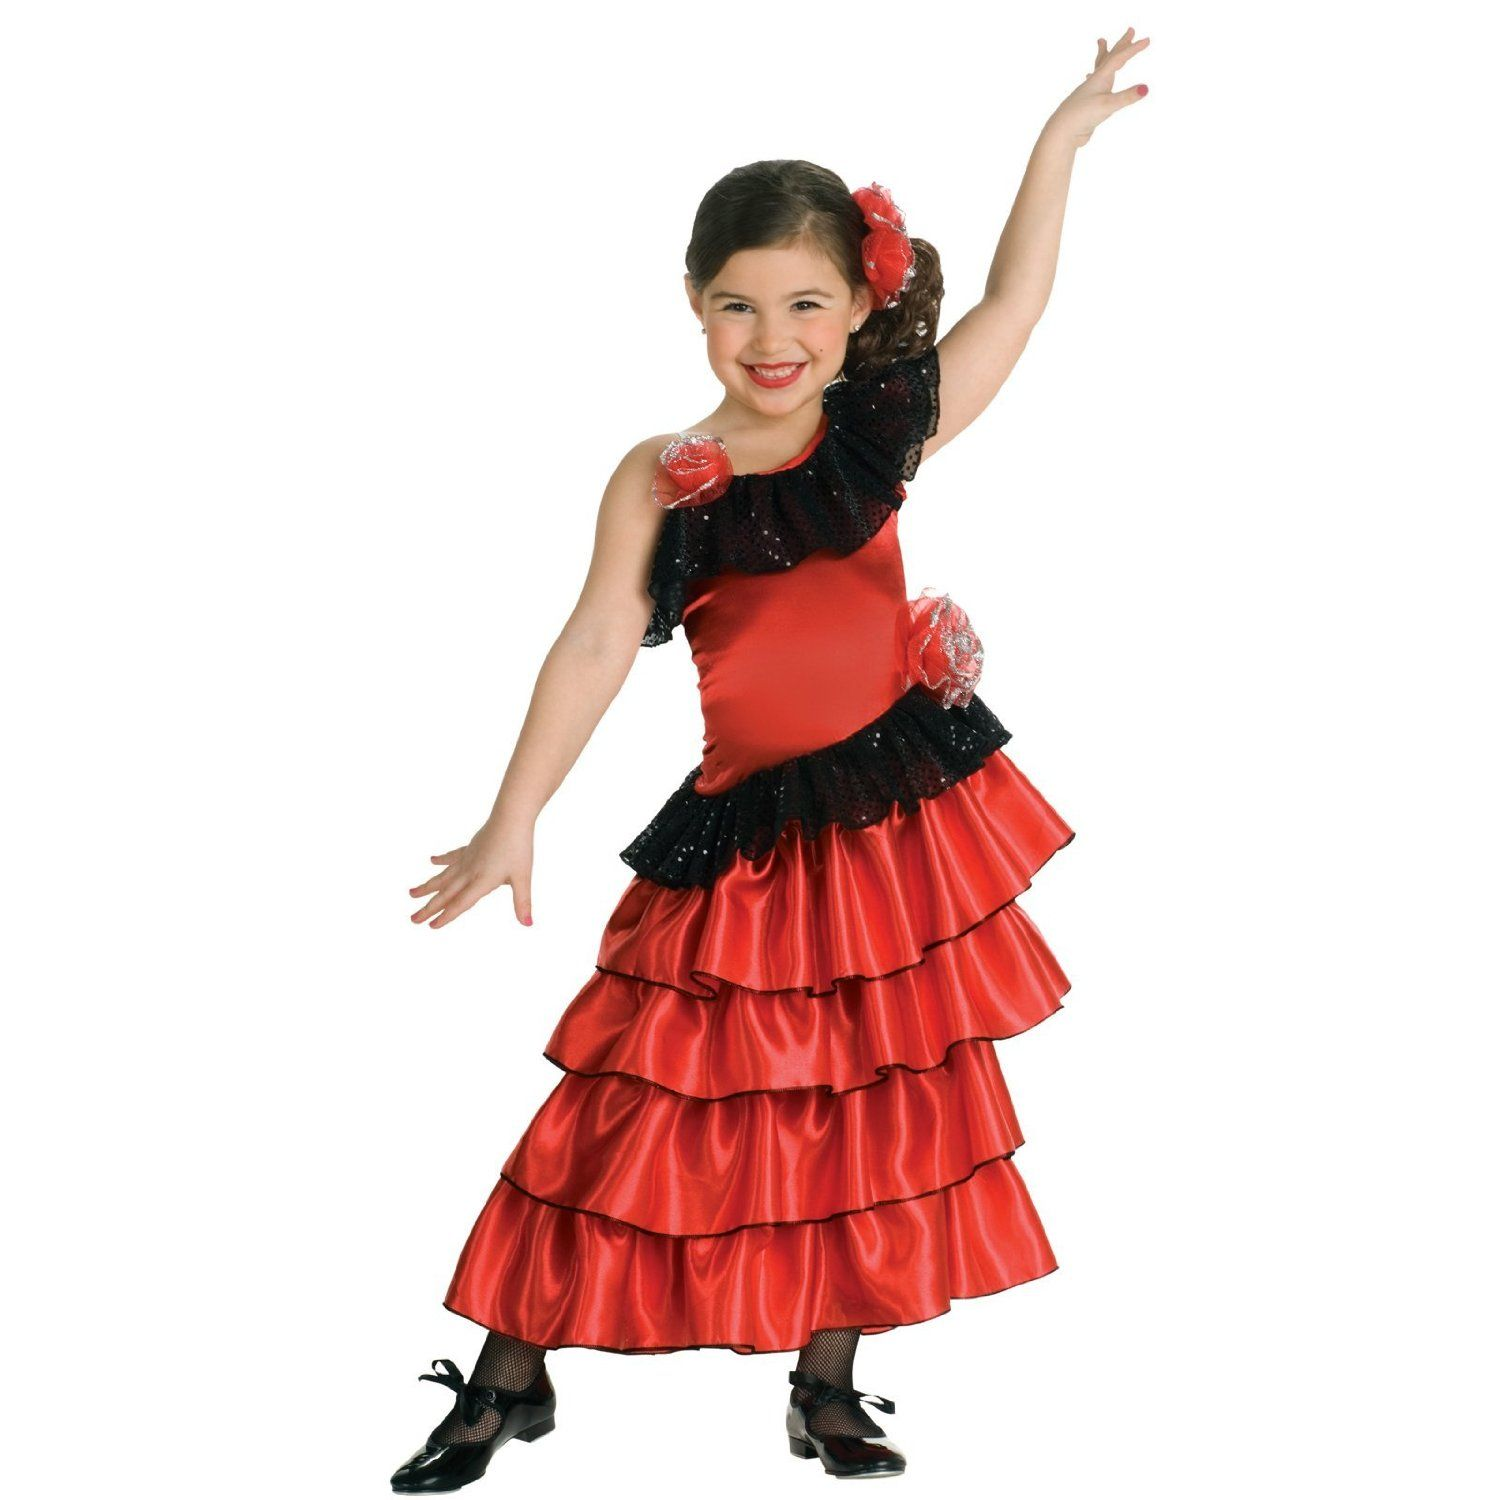 e7053f89b traditional brazilian dress costume for girls - Google Search | Girl ...